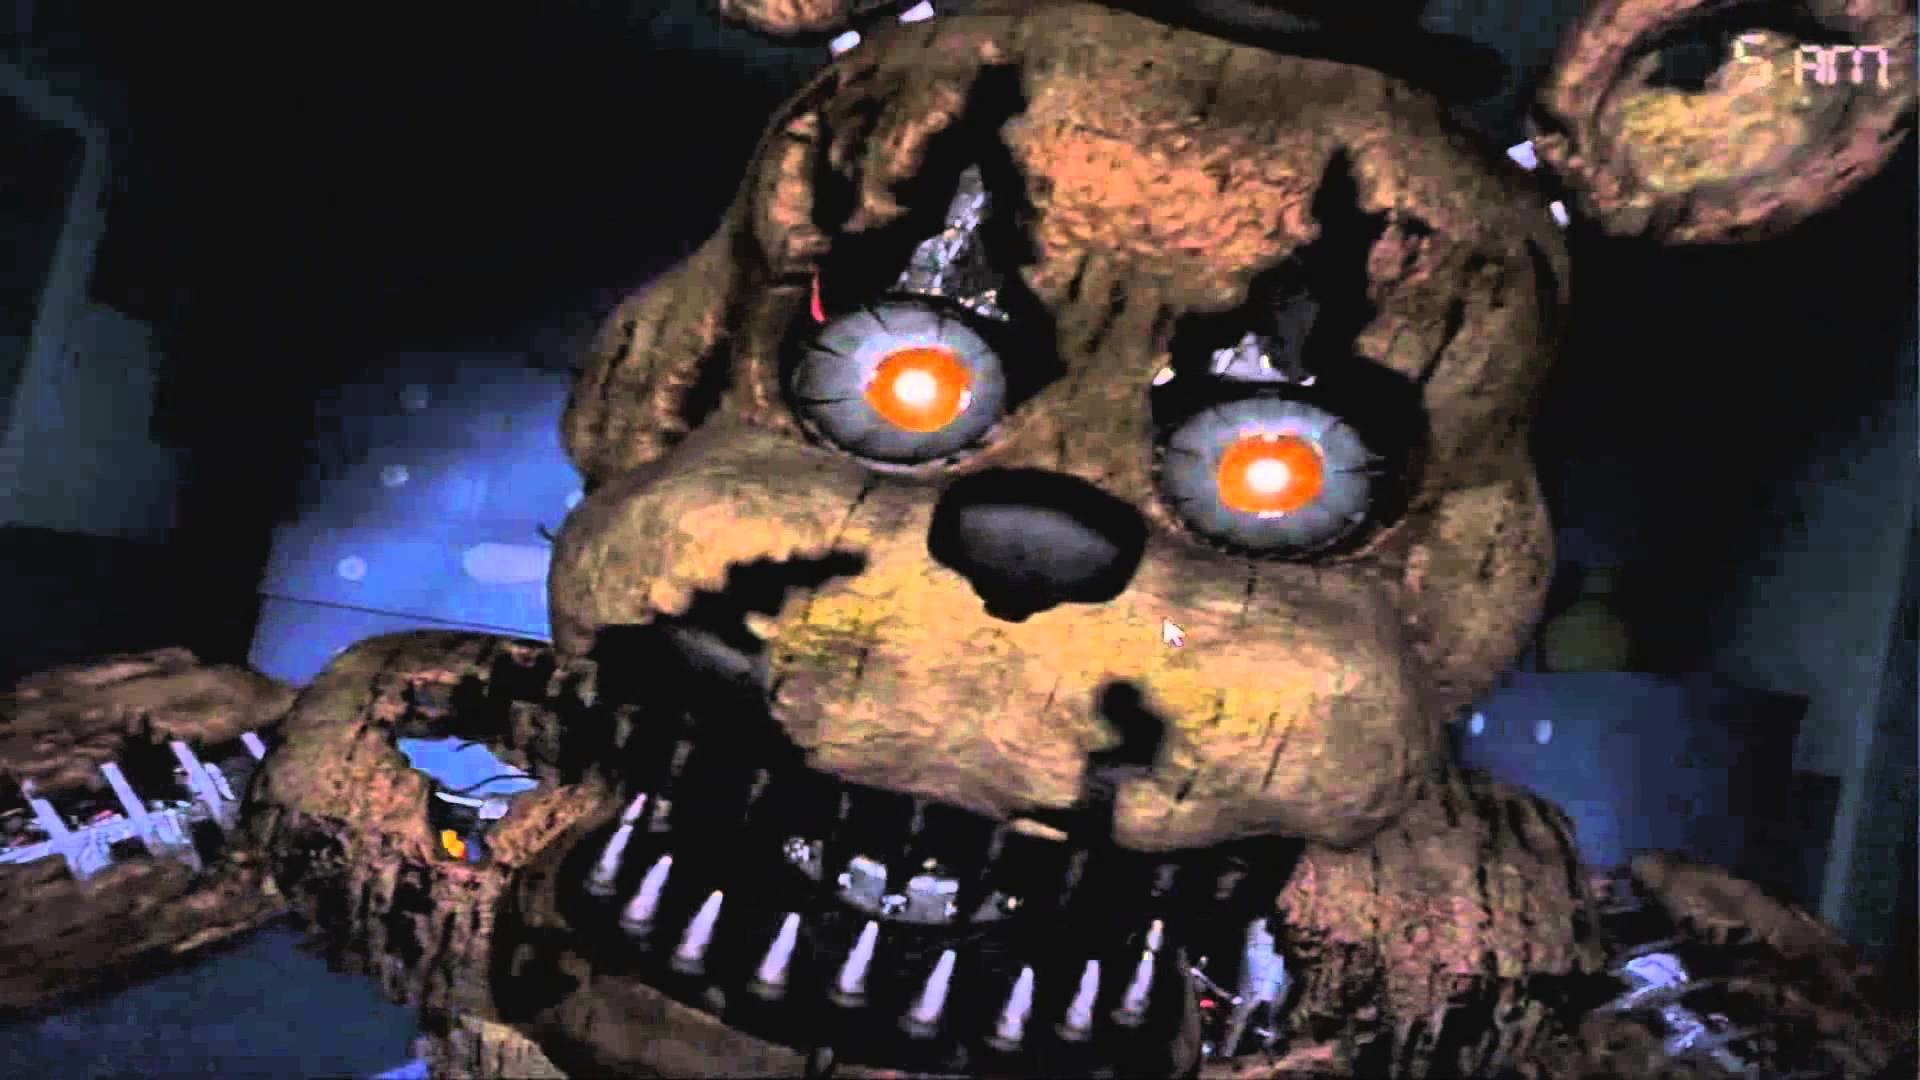 Five Nights At Freddy's 4 All Jumpscares (FNAF 4 ALL JUMPSCARES)